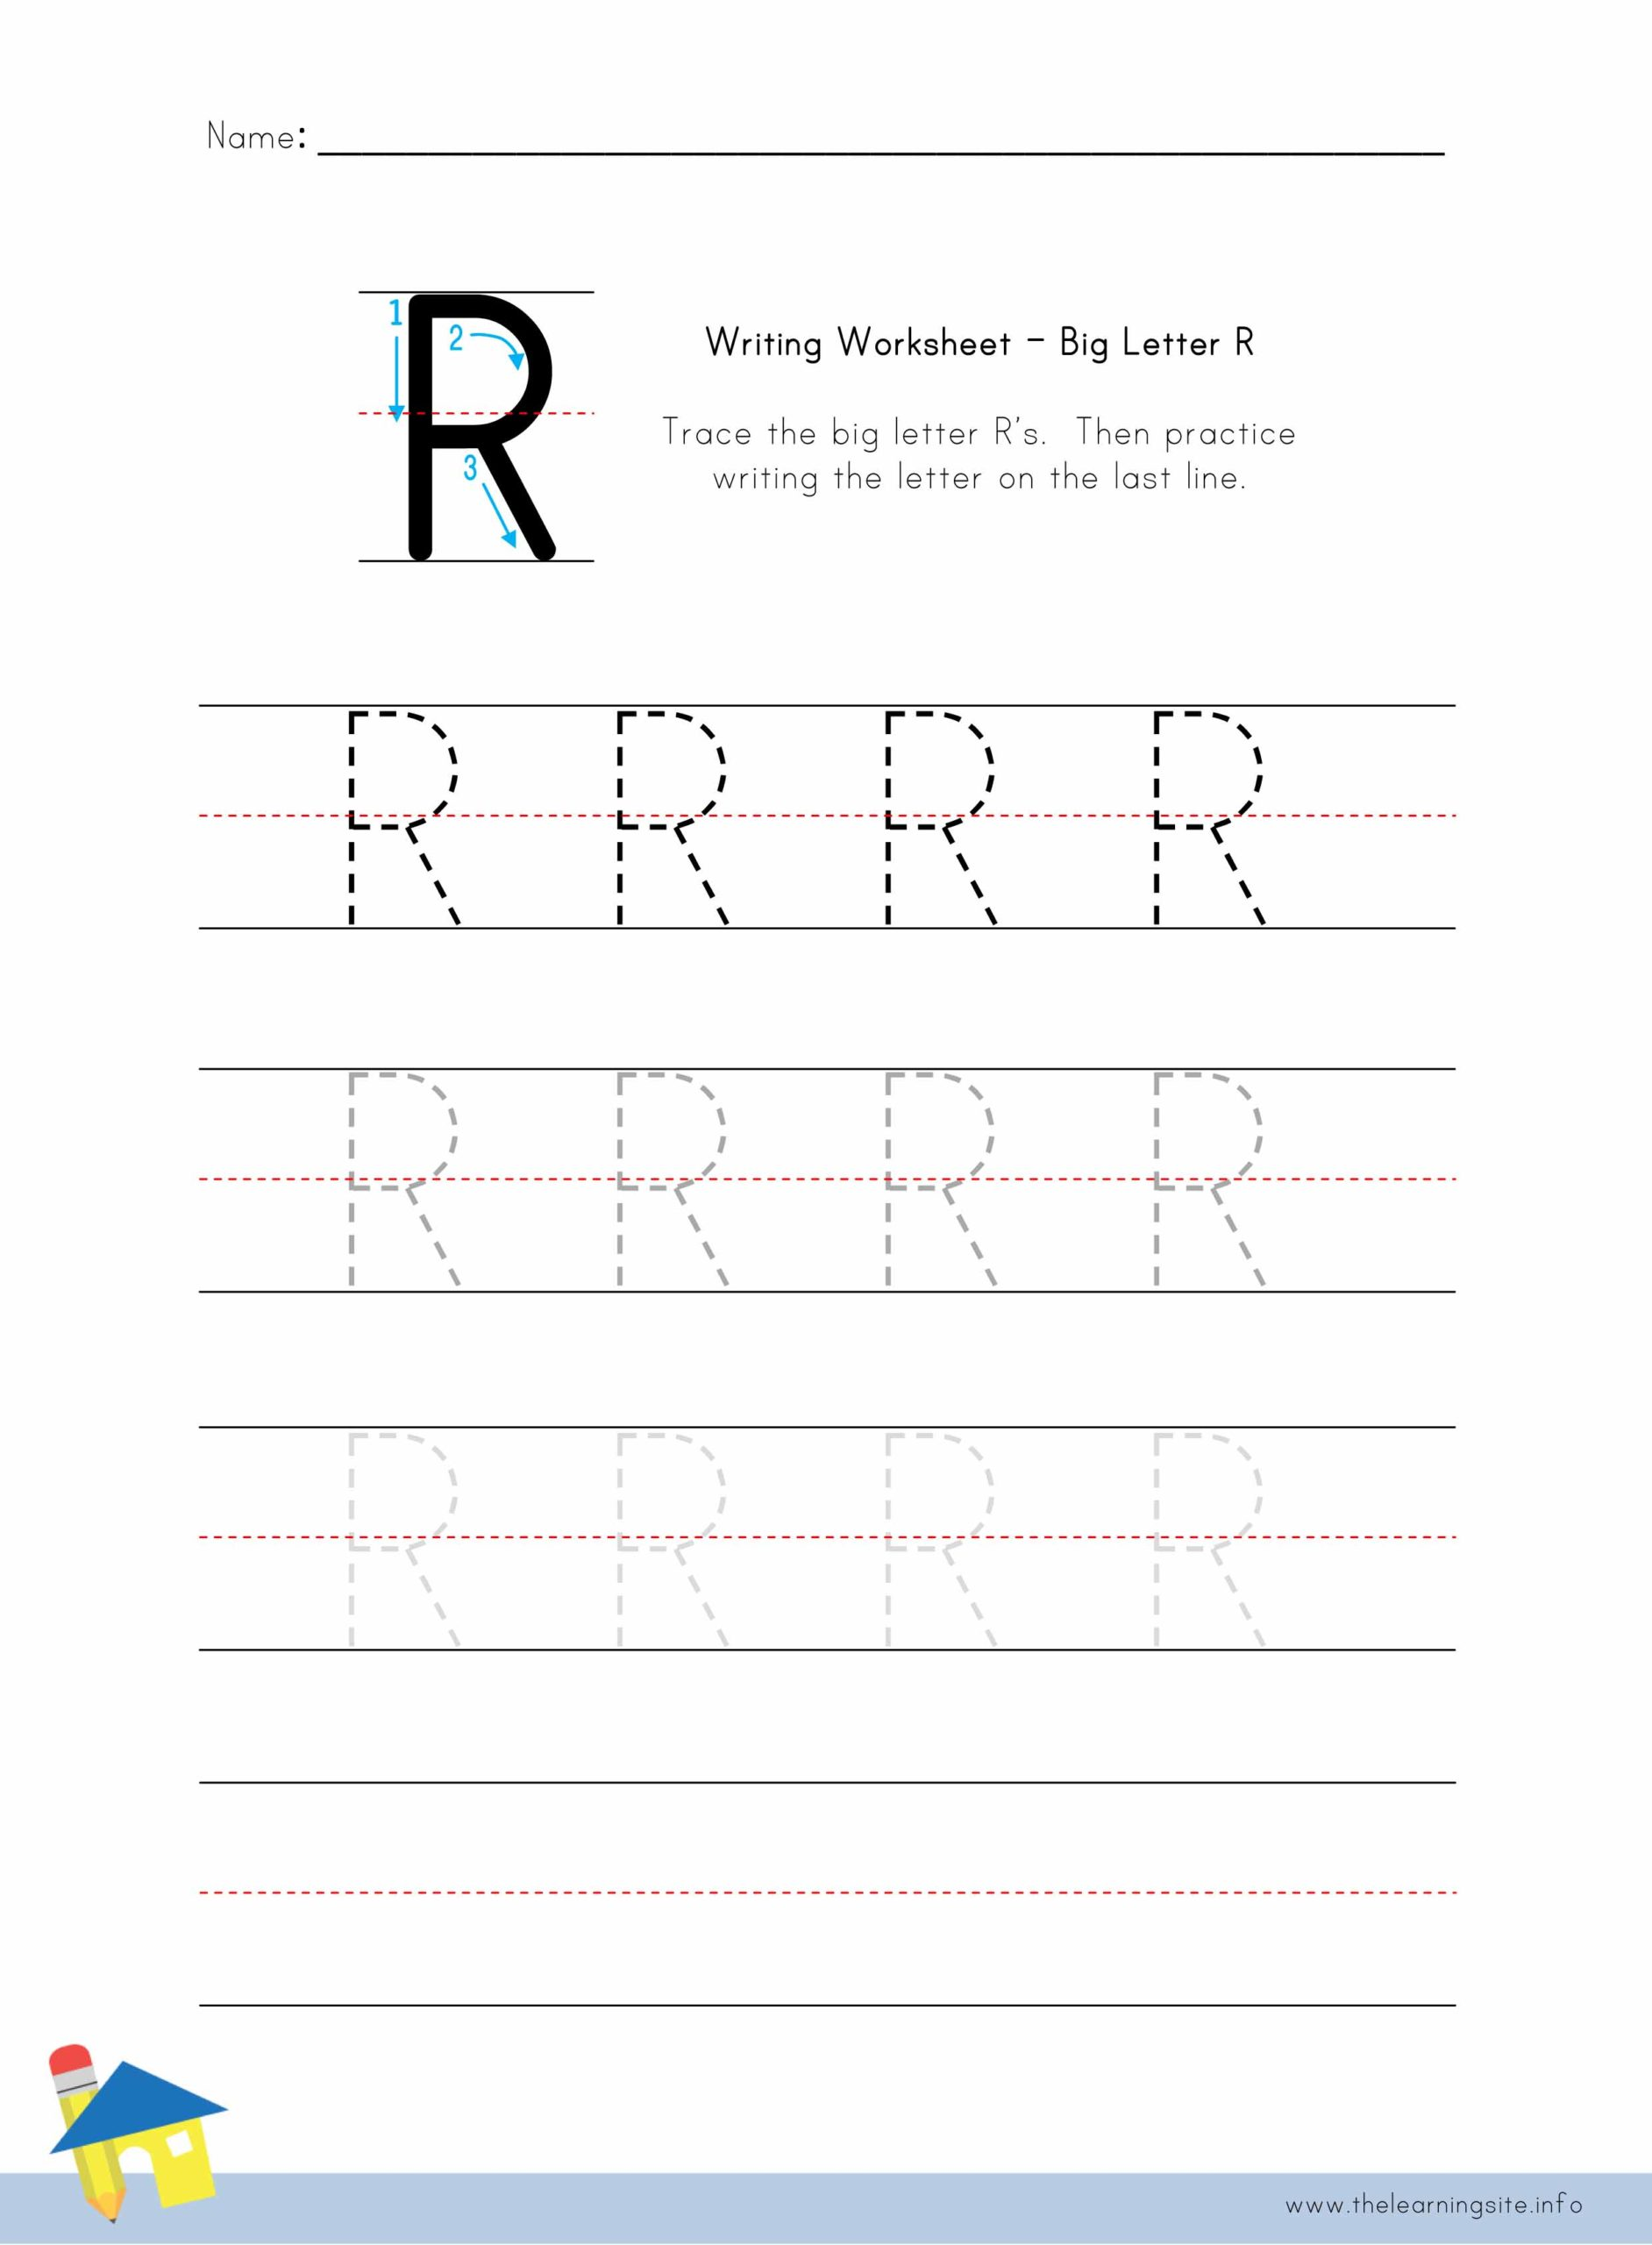 Big Letter R Writing Worksheet The Learning Site